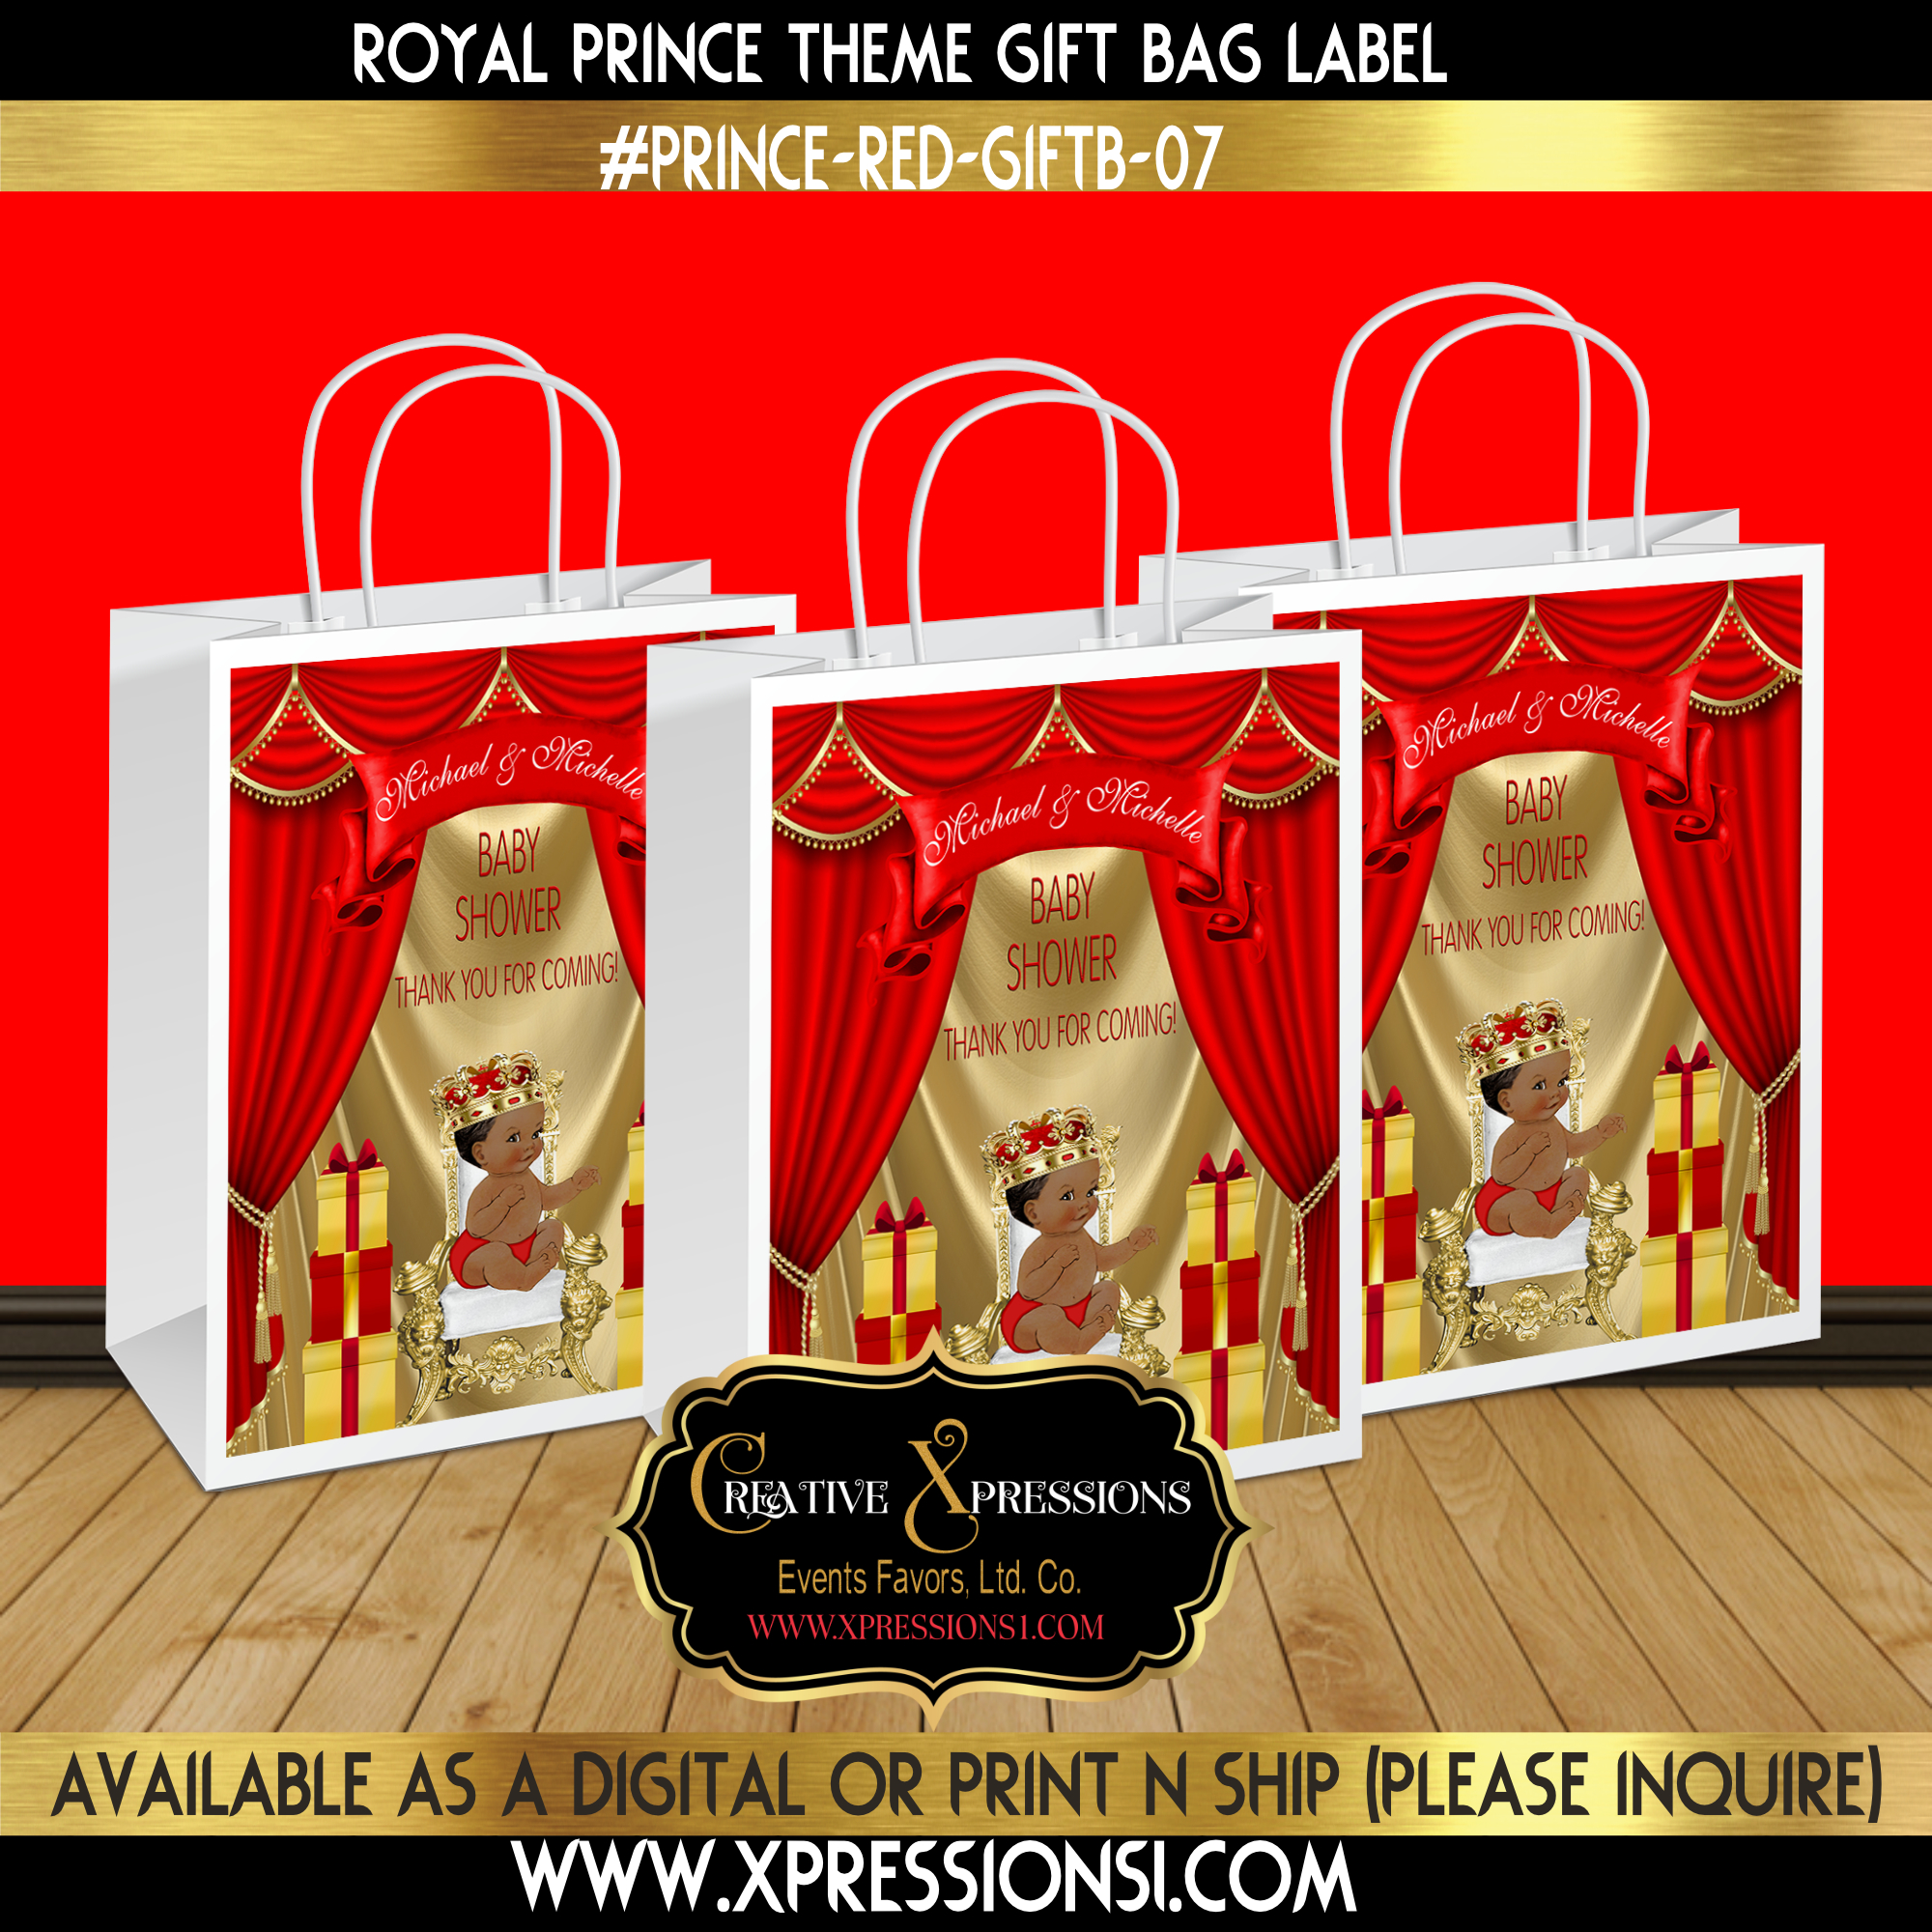 Royal Prince with Presents Gift Bag